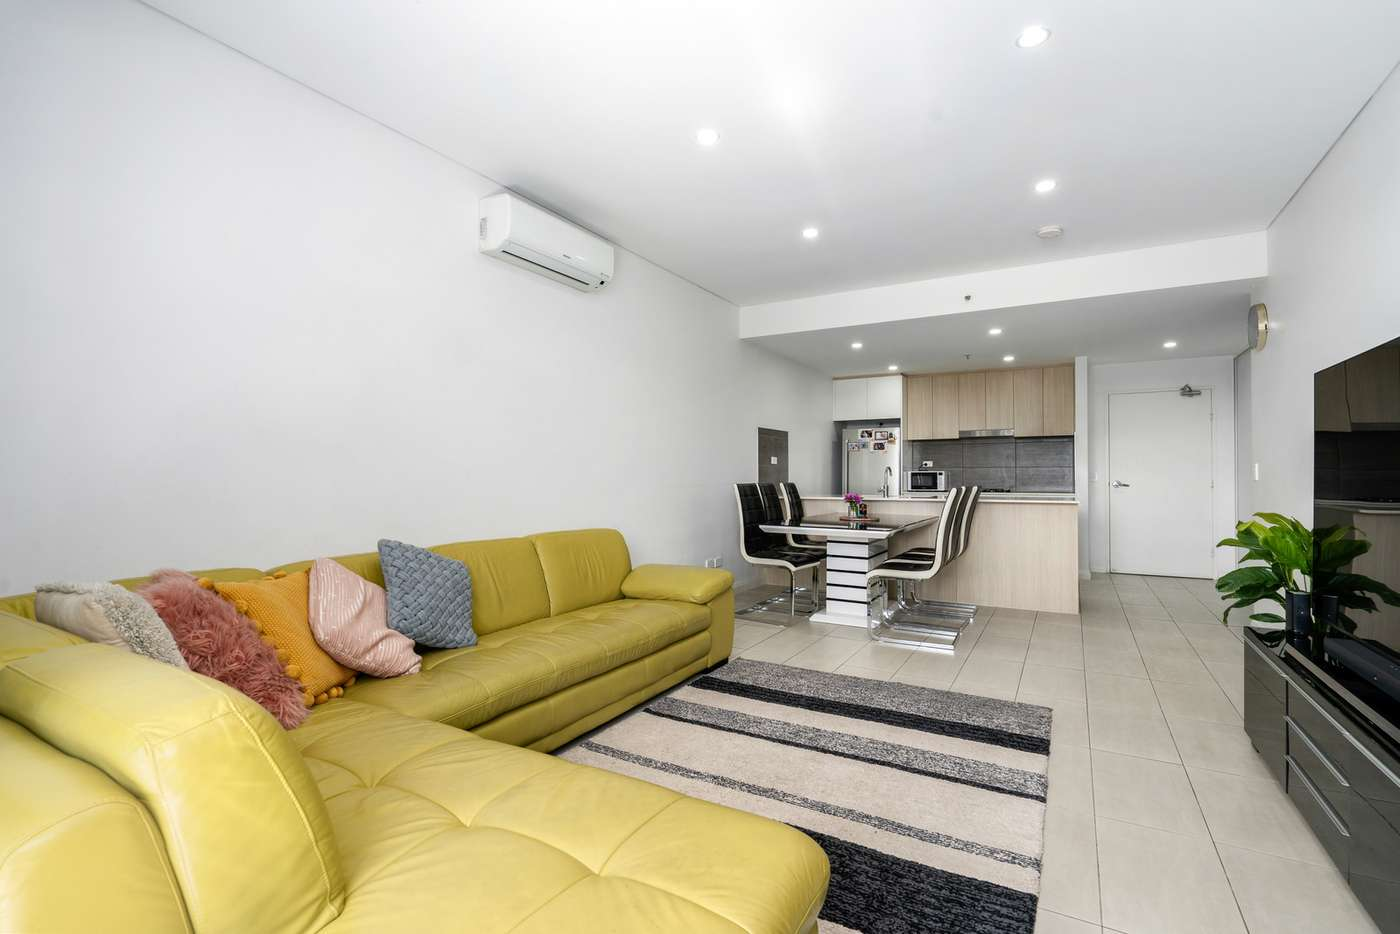 Fifth view of Homely apartment listing, 410/18 Harrow Road, Auburn NSW 2144